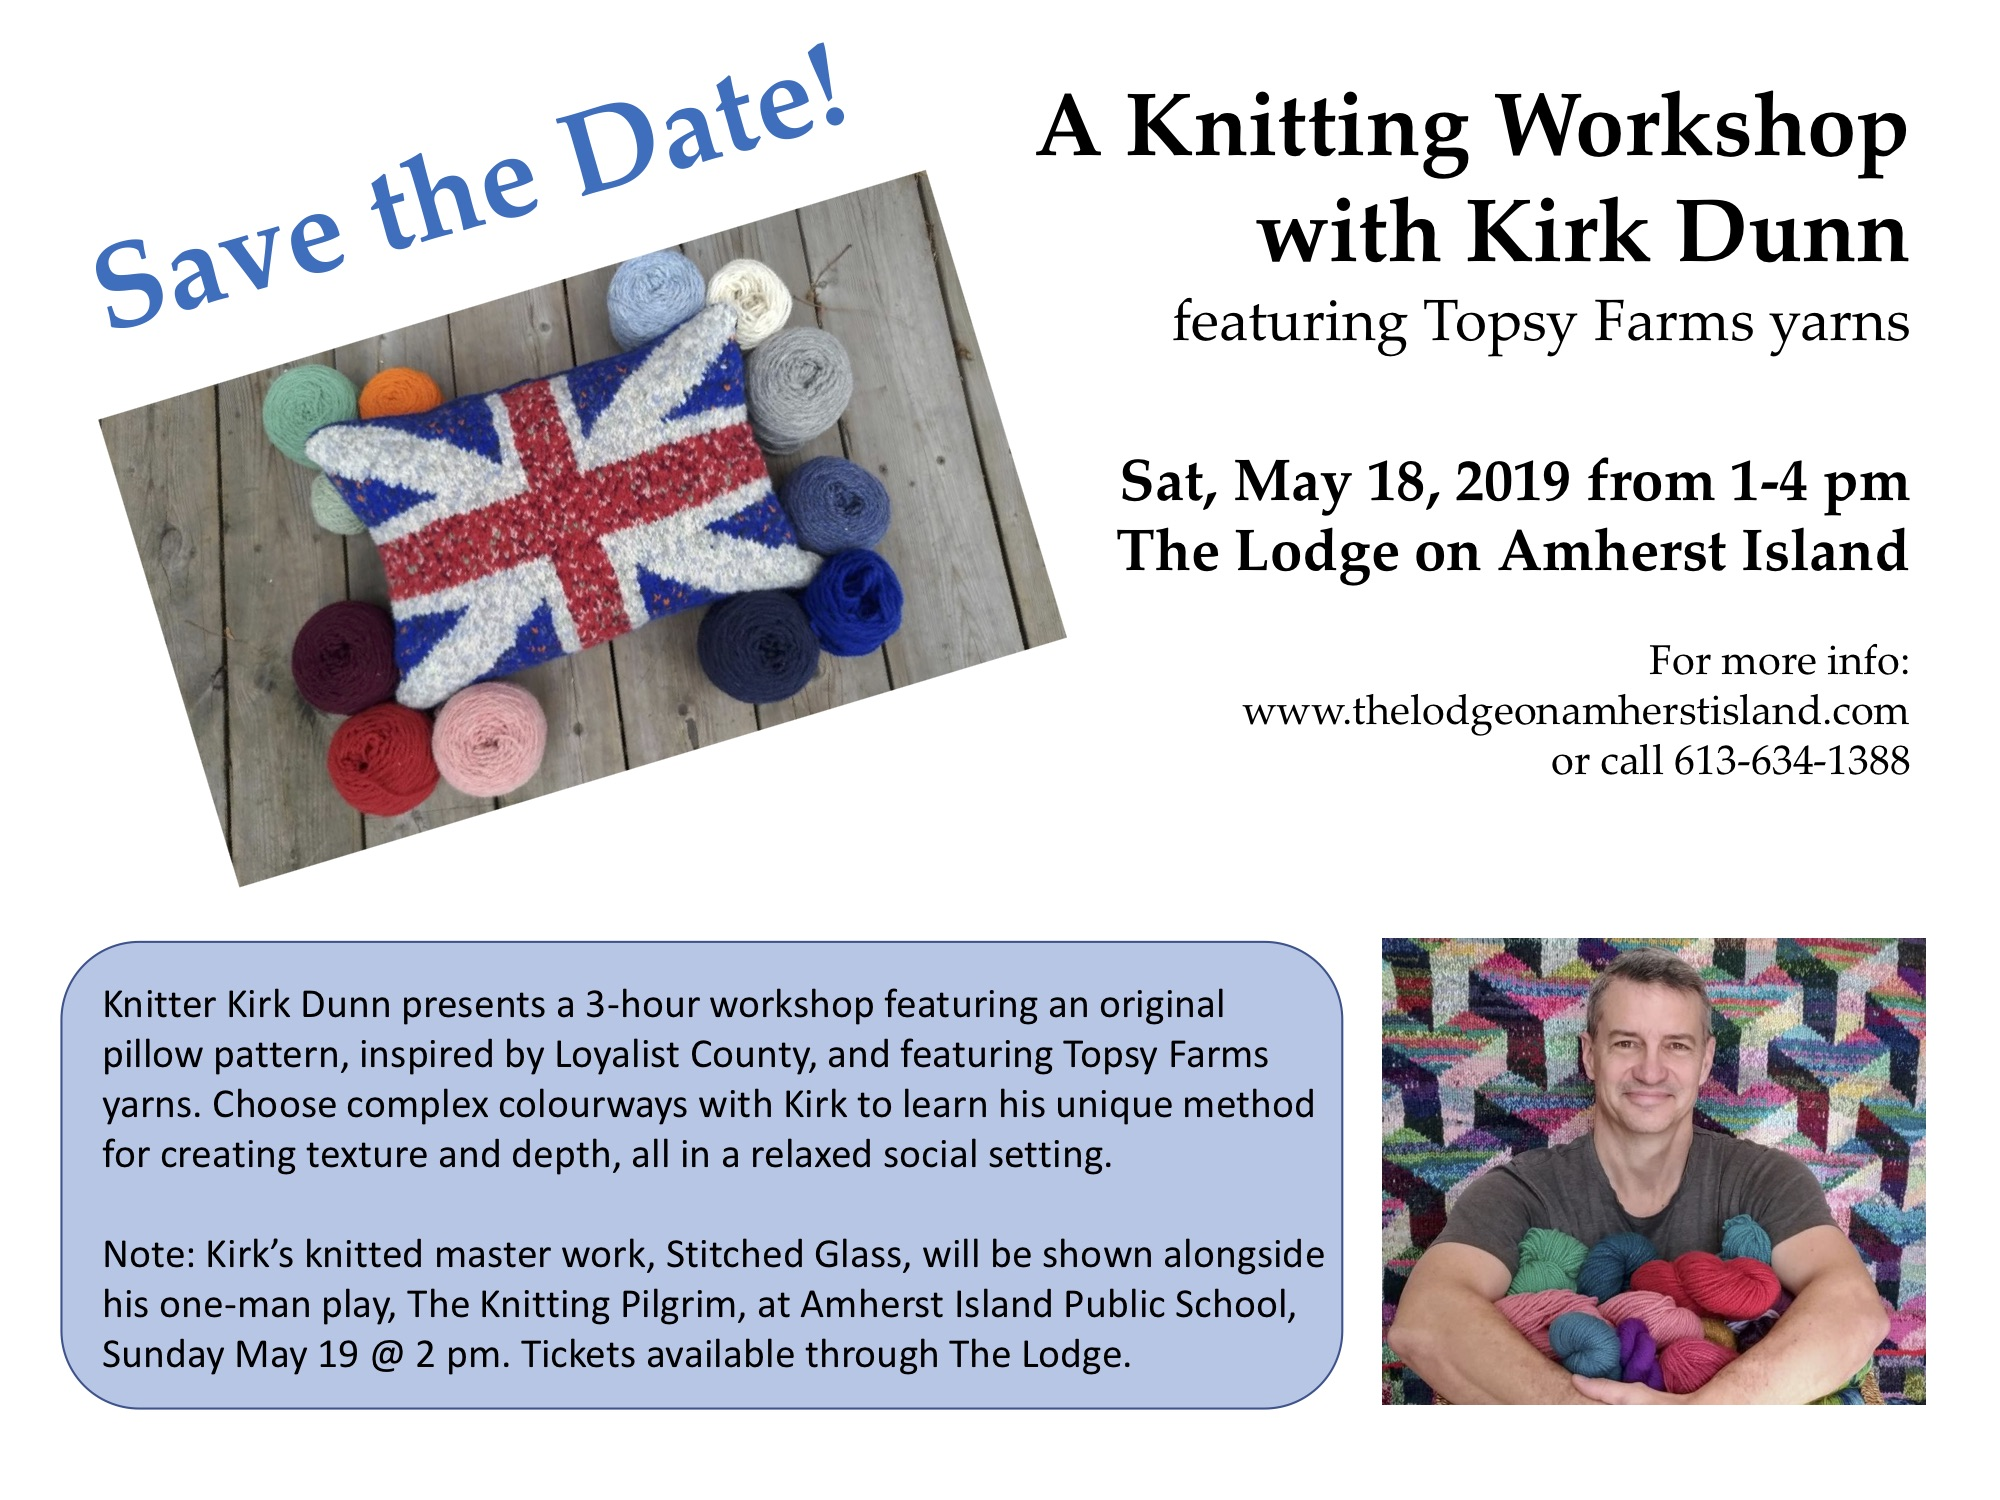 Knitting Workshop with Kirk Dunn @ The Lodge on Amherst Island